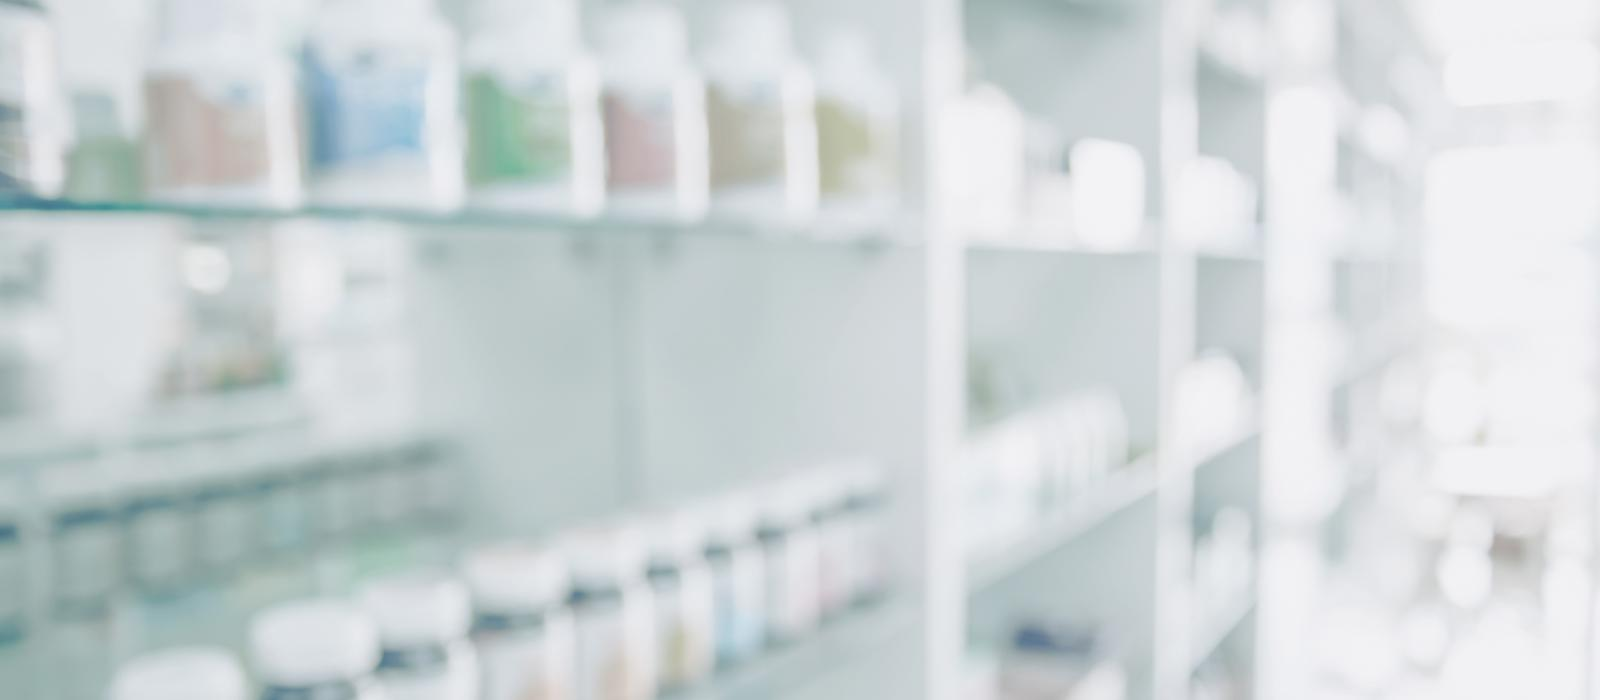 You've Been Prescribed an Antibiotic - Now What?